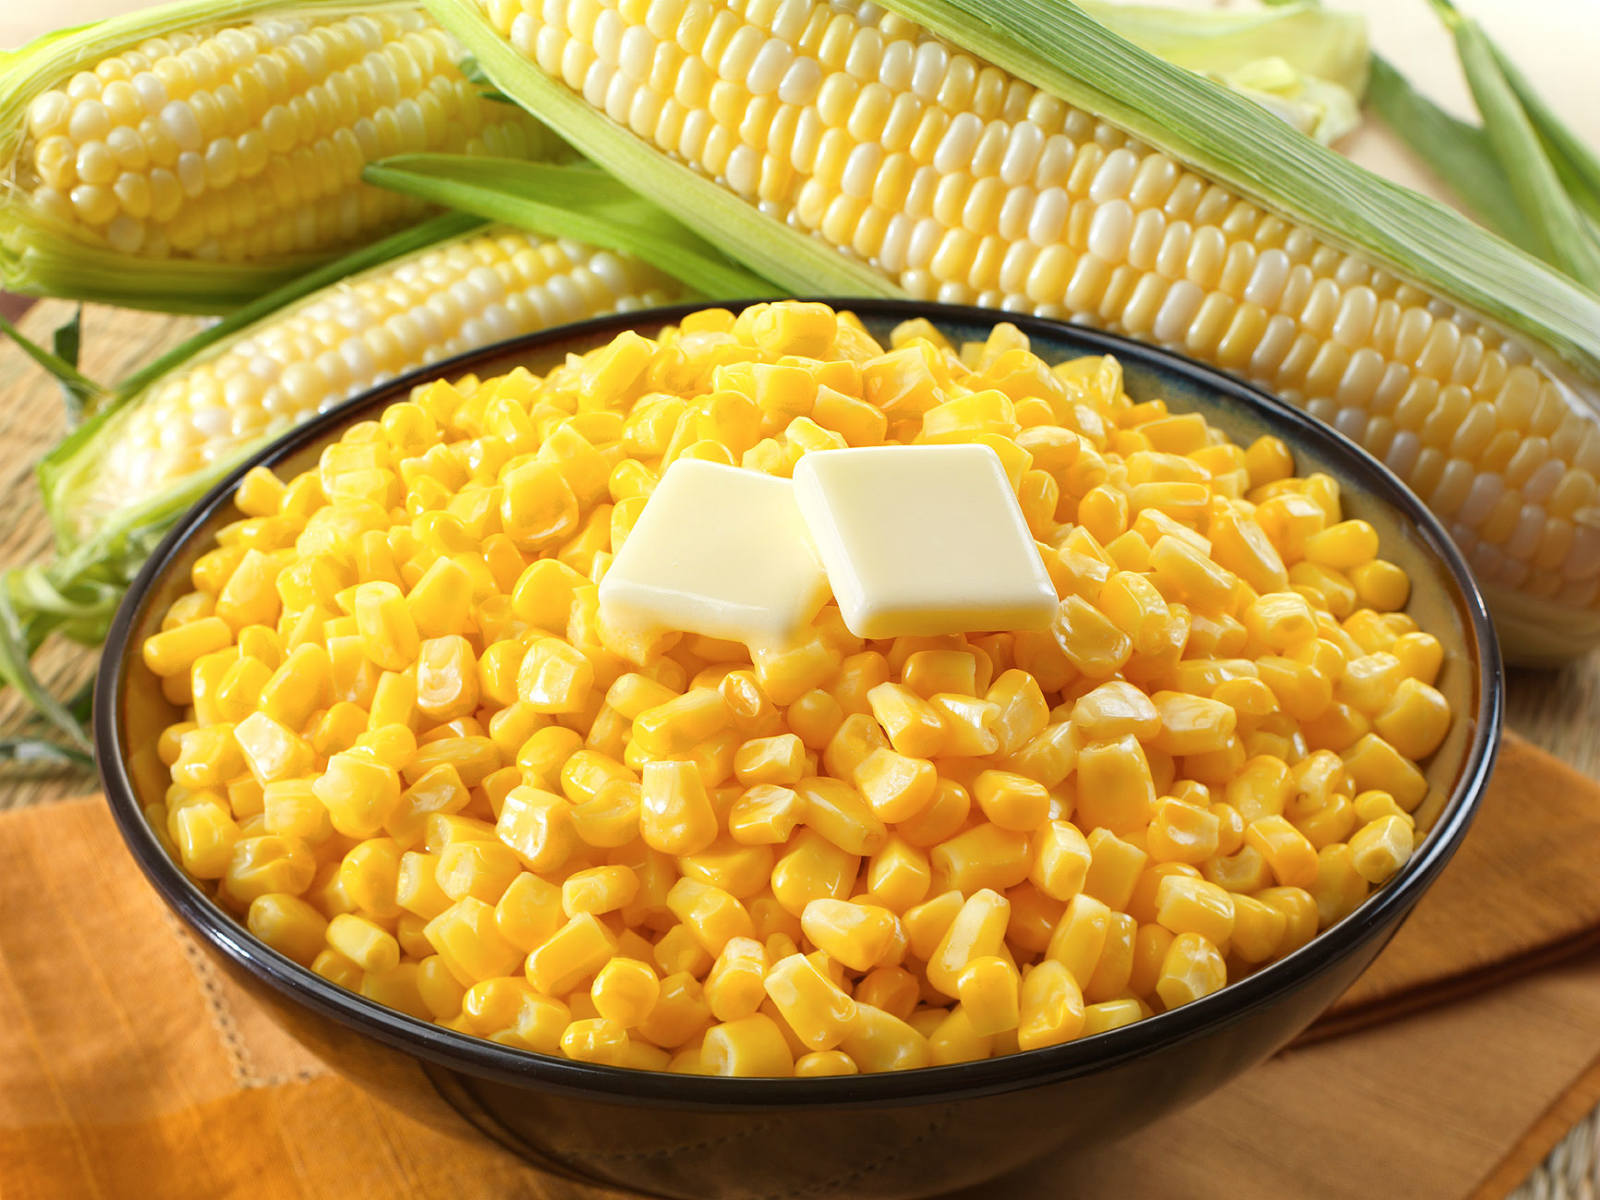 Corn creates more starch as it is aging and because of that it is one of the few vegetables that are good sources of starch carbohydrates.